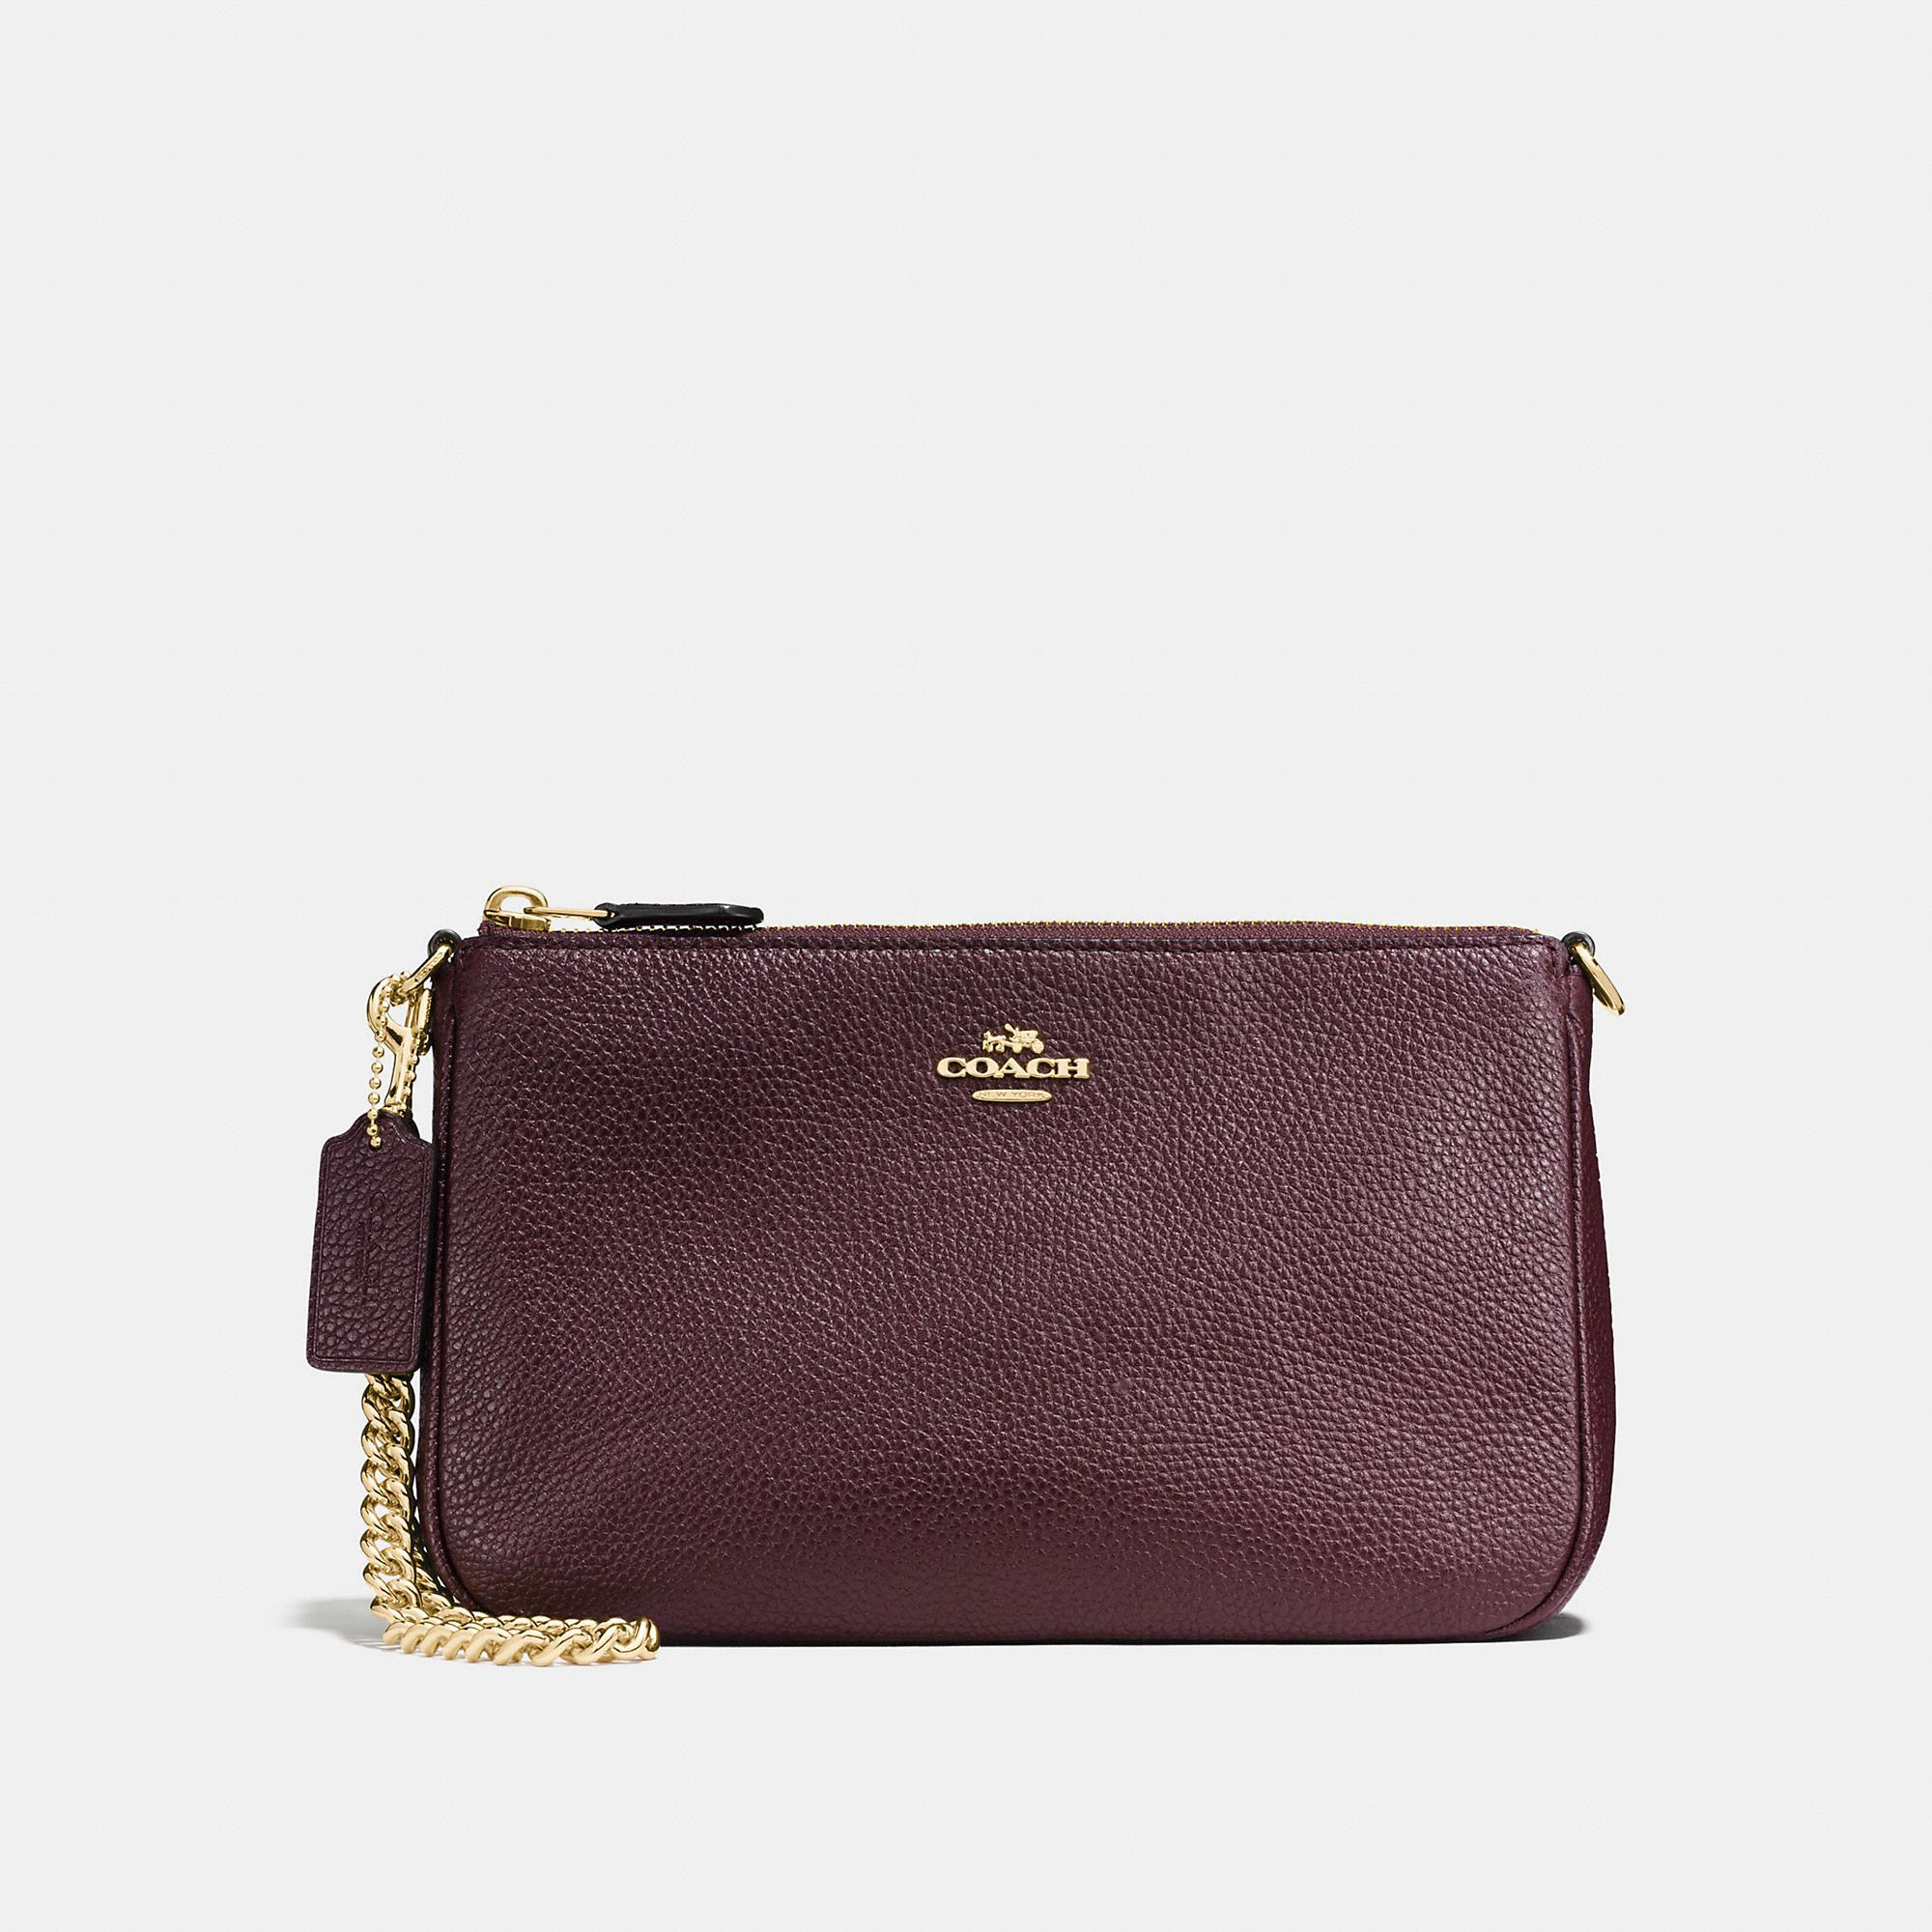 Coach Nolita Wristlet 22 In Polished Pebble Leather In Oxblood/light Gold